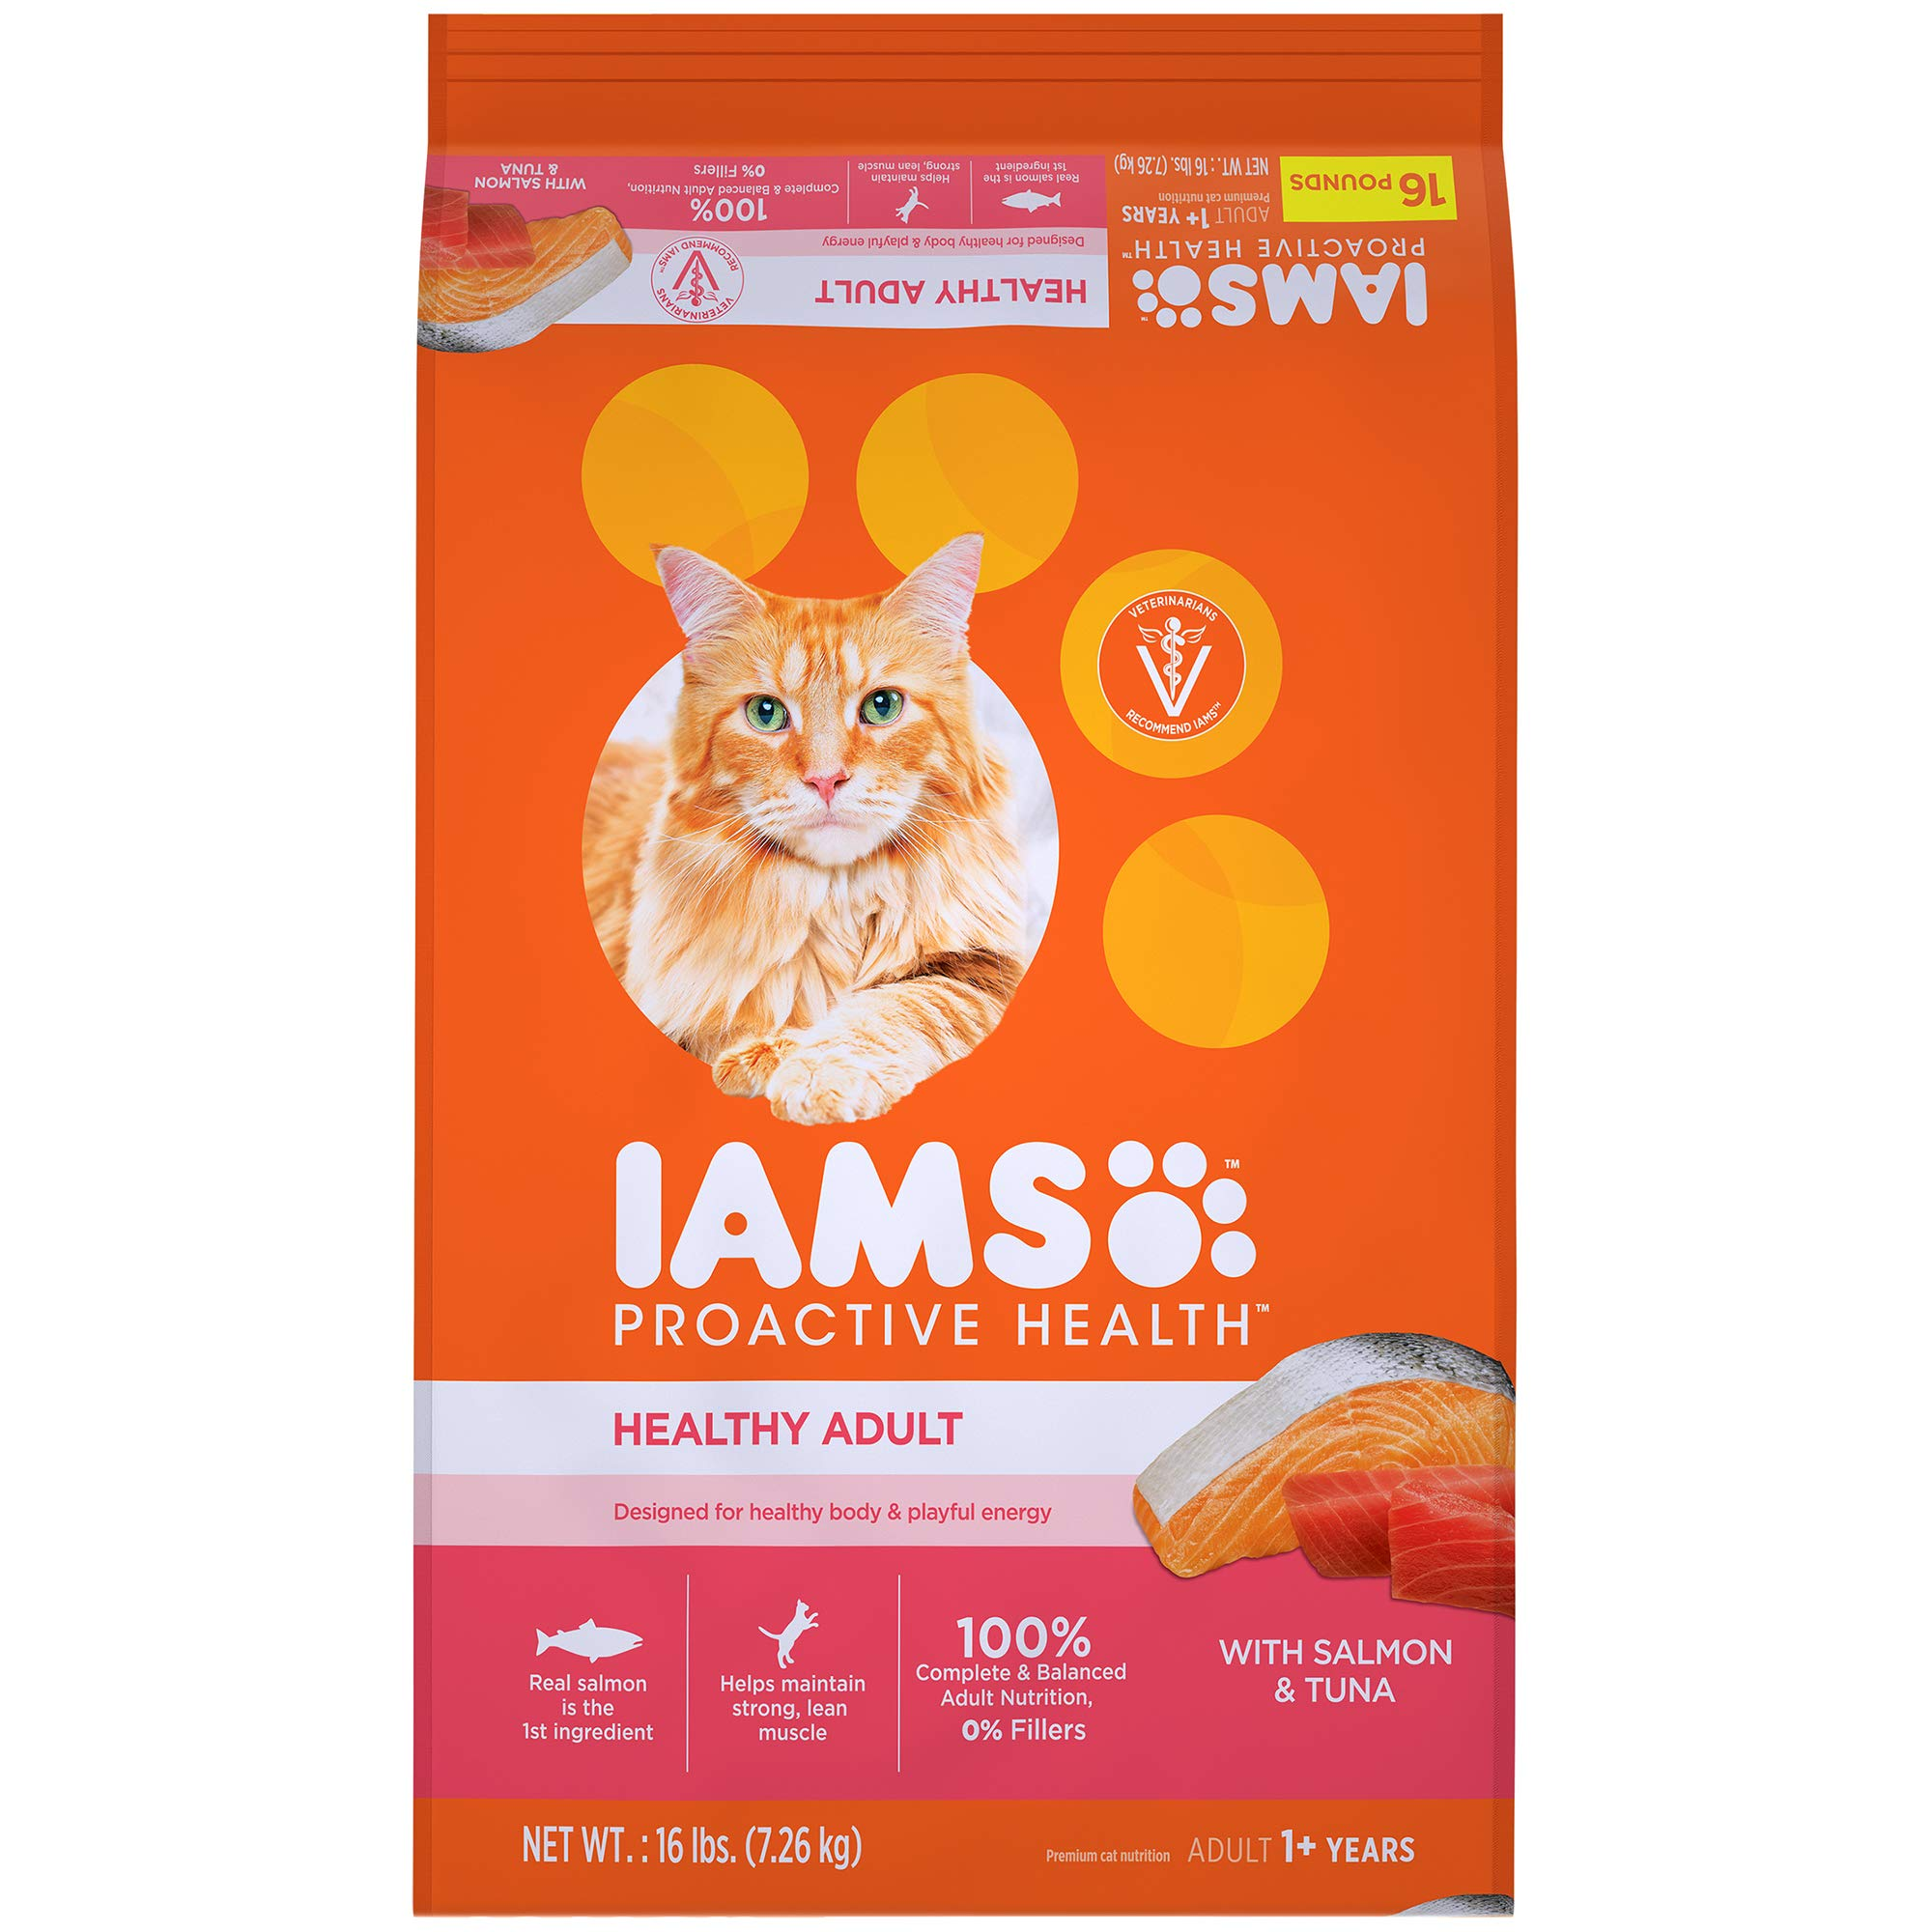 IAMS PROACTIVE HEALTH Adult Healthy Dry Cat Food with Salmon and Tuna, 16 lb. Bag